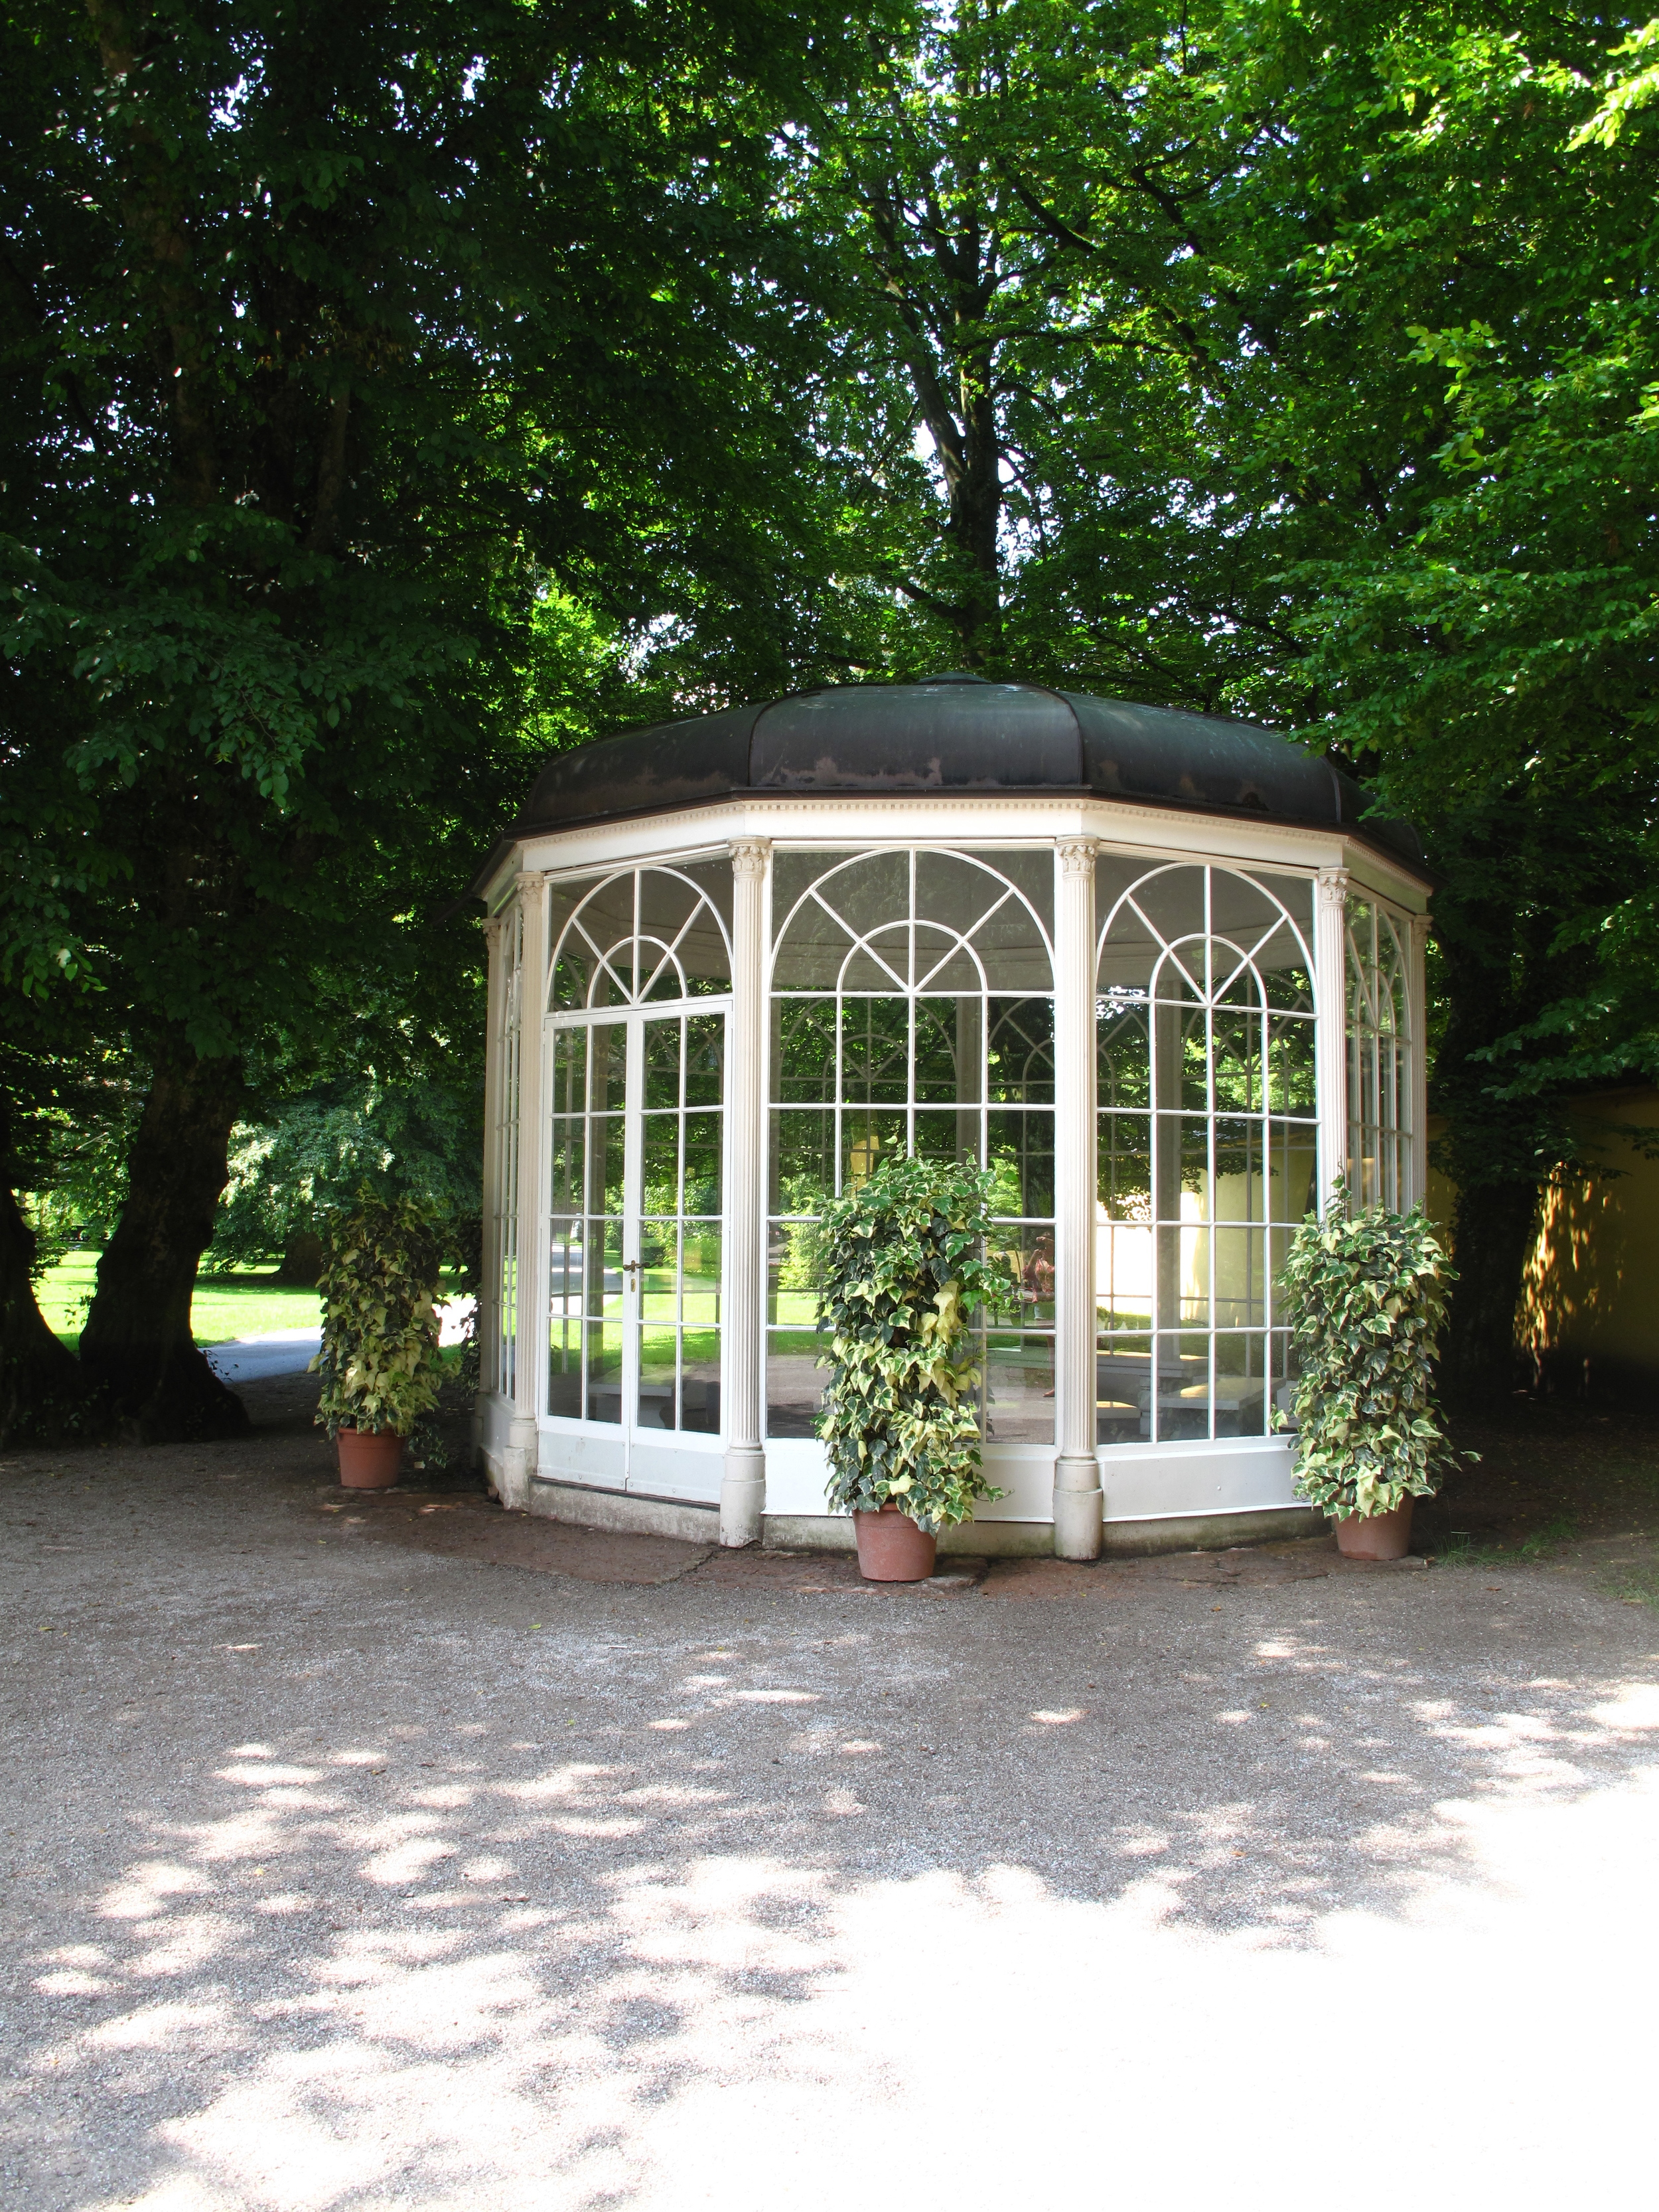 The gazebo from Sound of Music's 'Sixteen Going on Seventeen'.